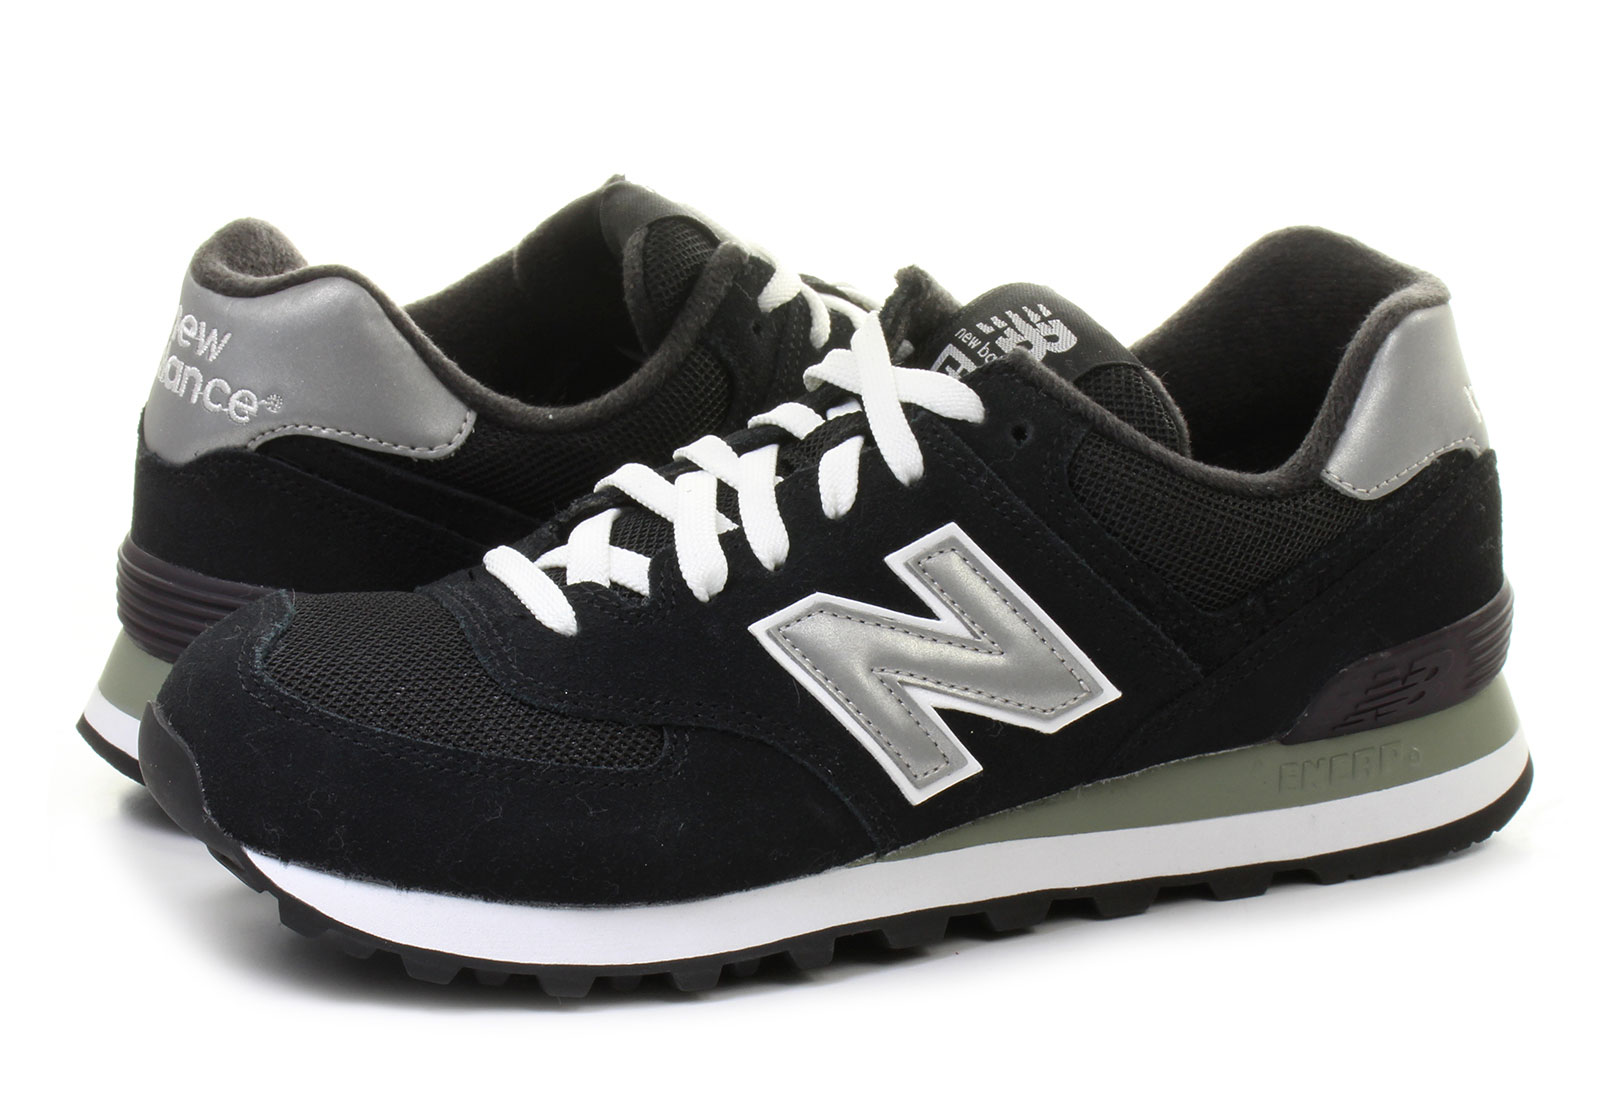 new balance shoes m574 m574nk online shop for sneakers shoes and boots. Black Bedroom Furniture Sets. Home Design Ideas